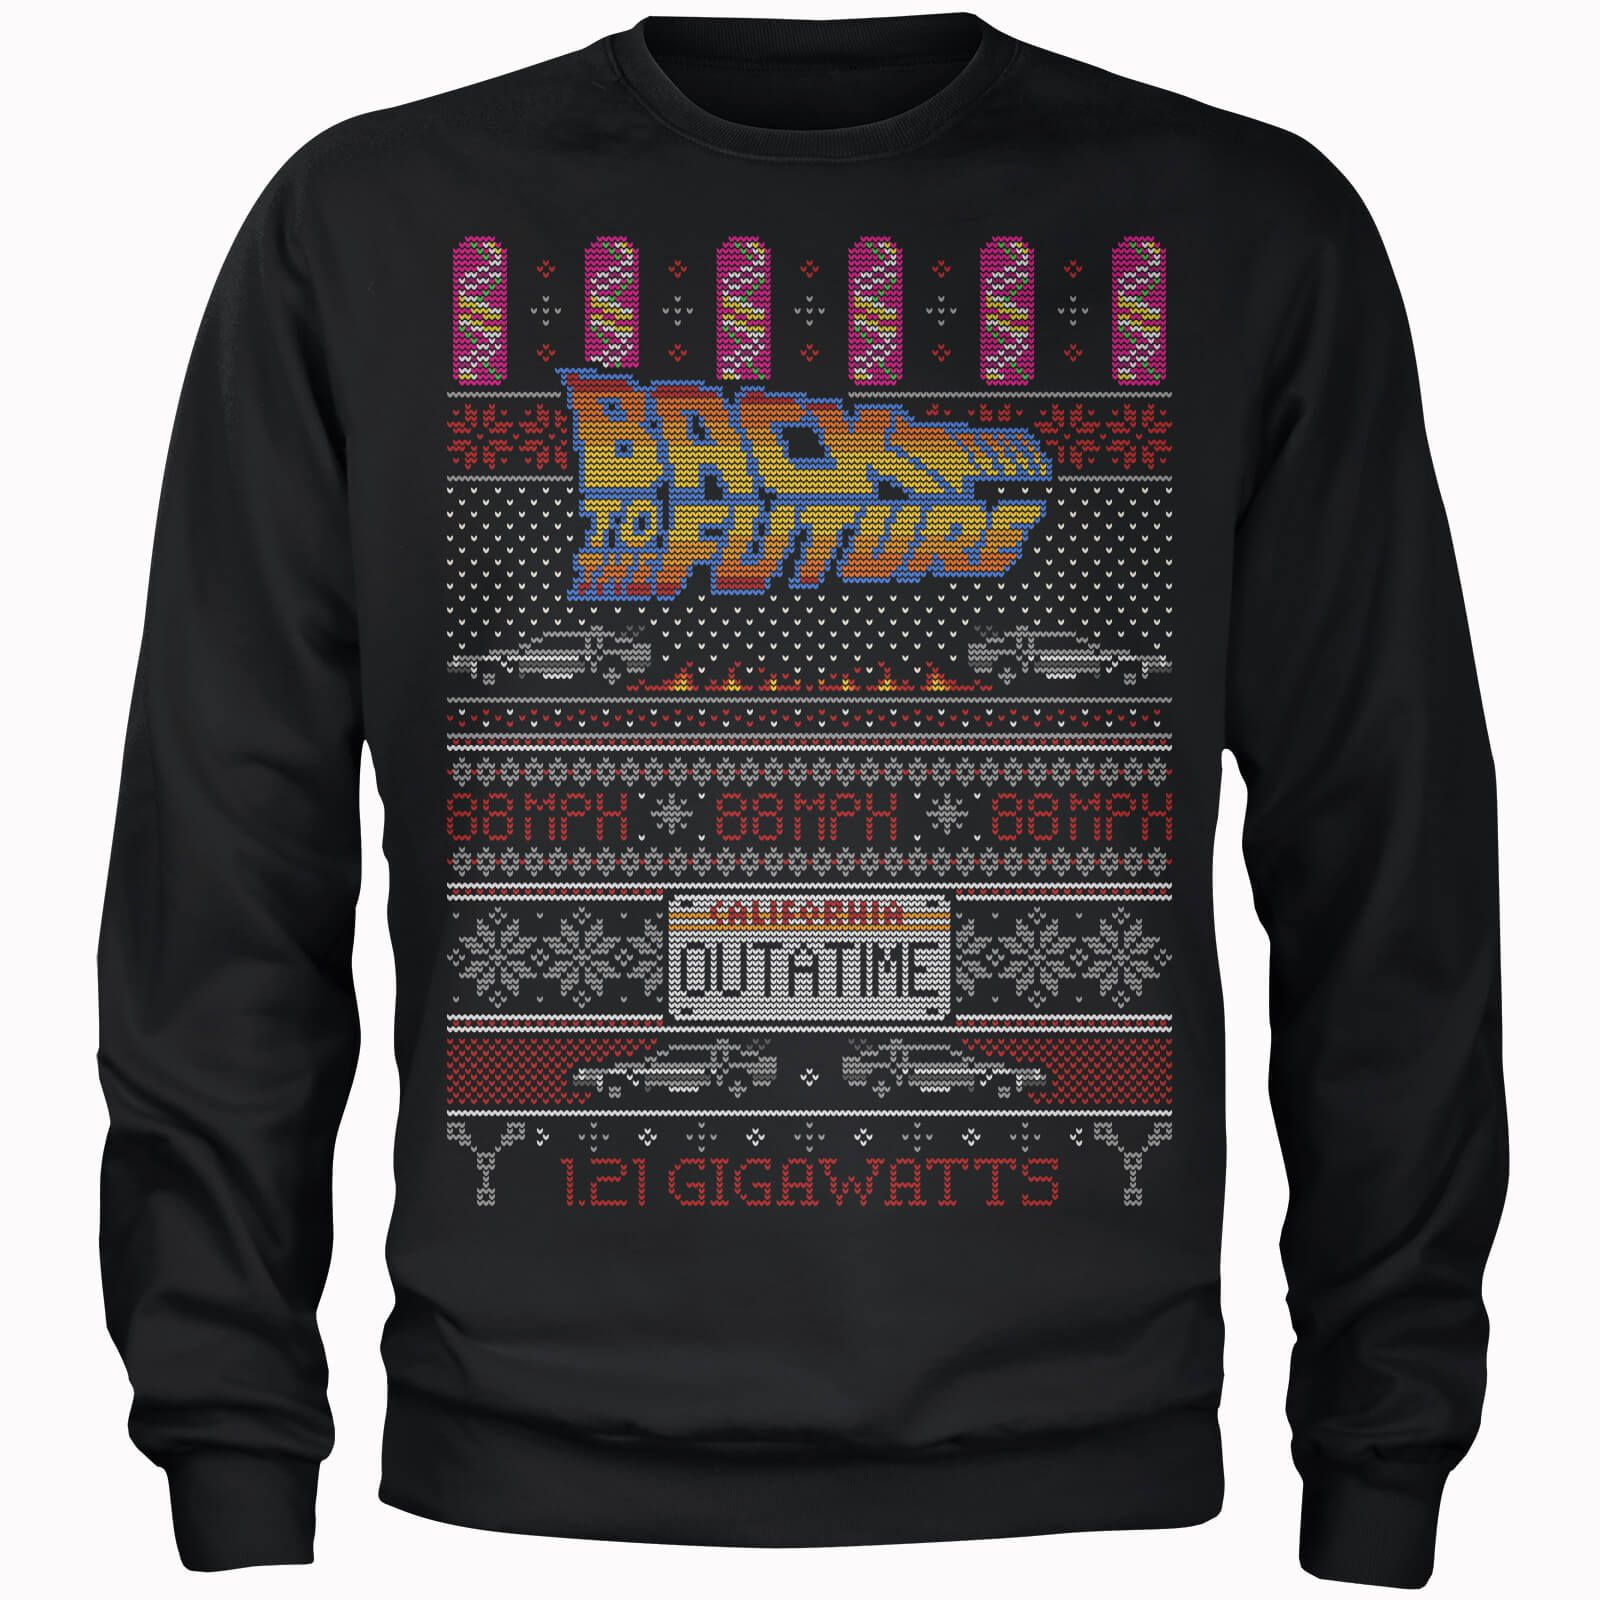 Pin by Eman on New year 2020 Christmas sweaters, New